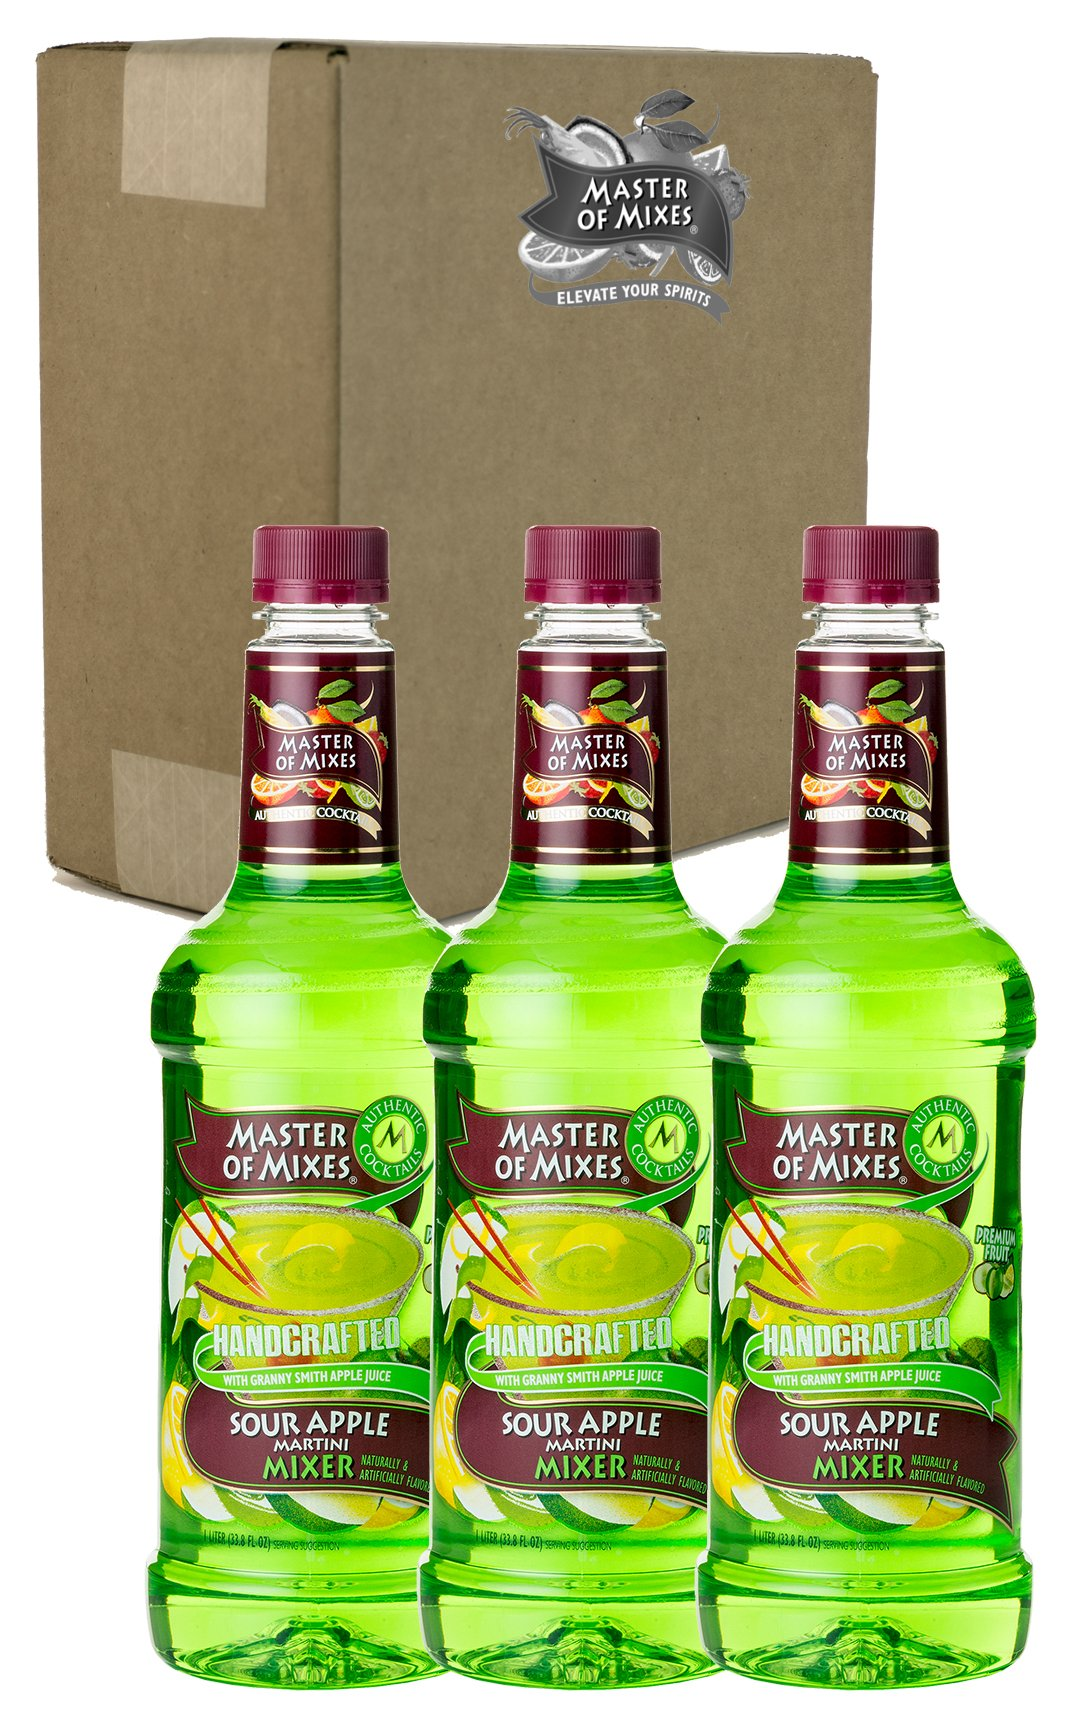 Master of Mixes Sour Apple Martini Drink Mix, Ready to Use, 1 Liter Bottle (33.8 Fl Oz), Pack of 3 by Master of Mixes